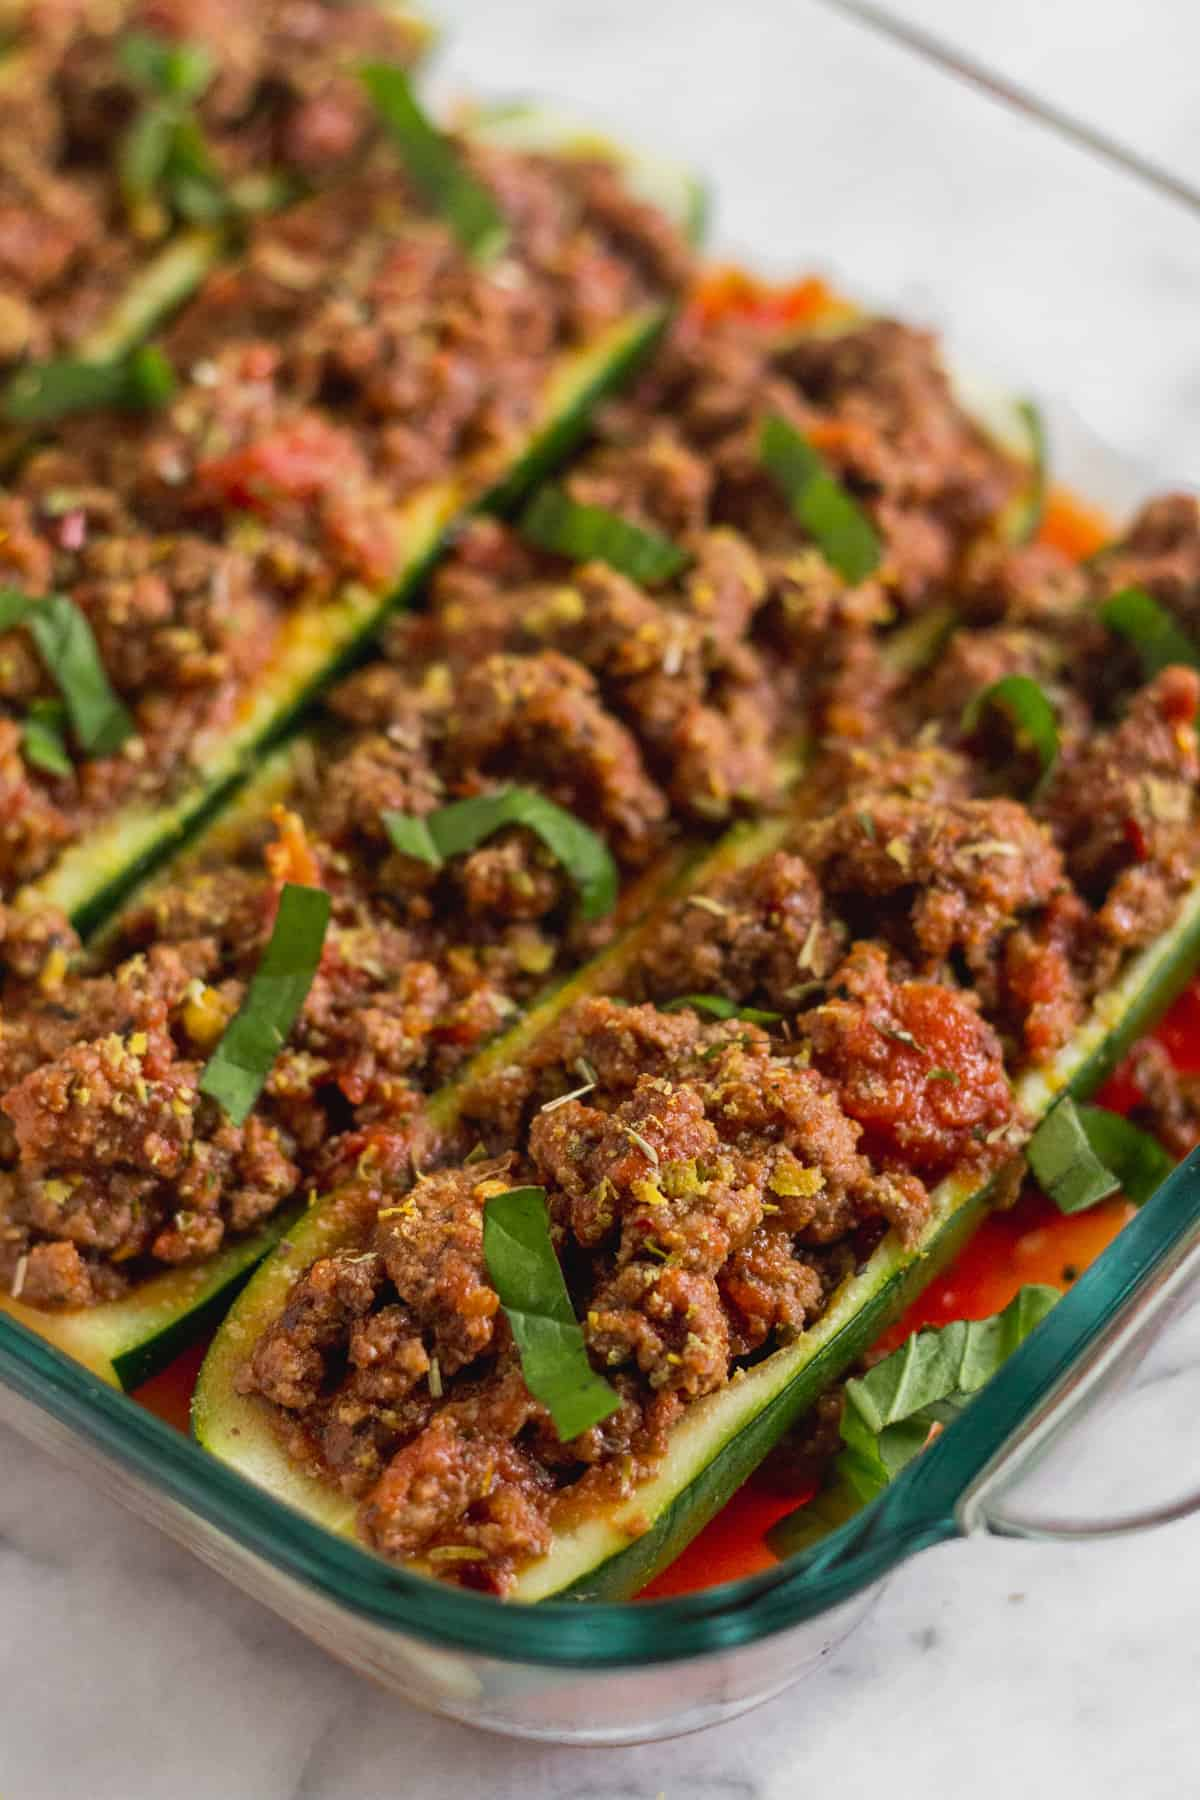 Glass baking dish filled with Italian beef stuffed zucchini boats topped with fresh basil